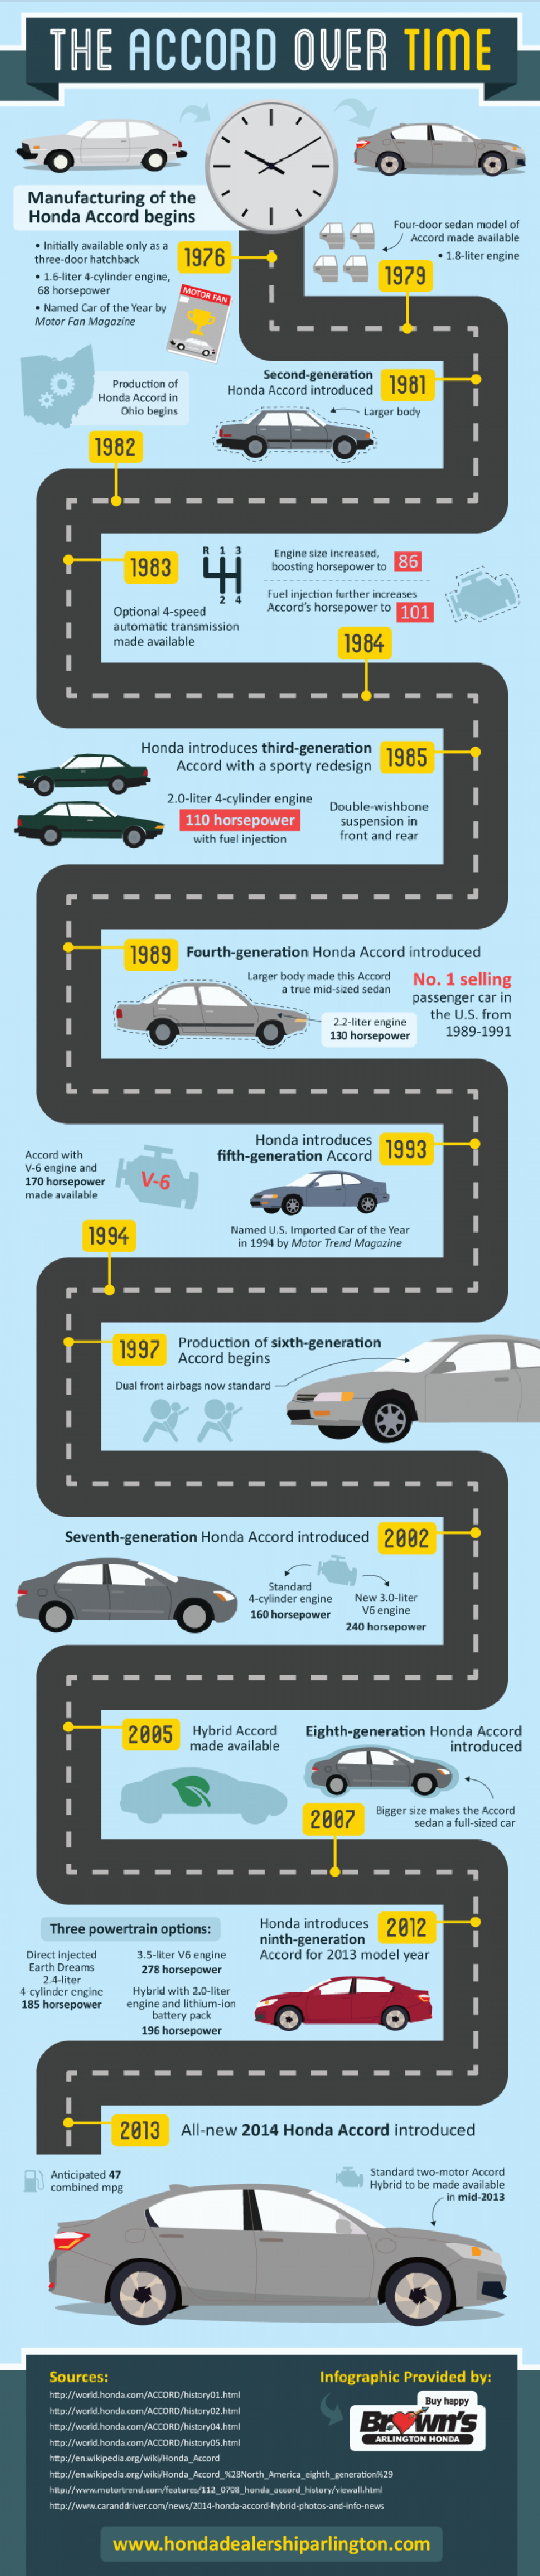 The Accord Over Time Infographic